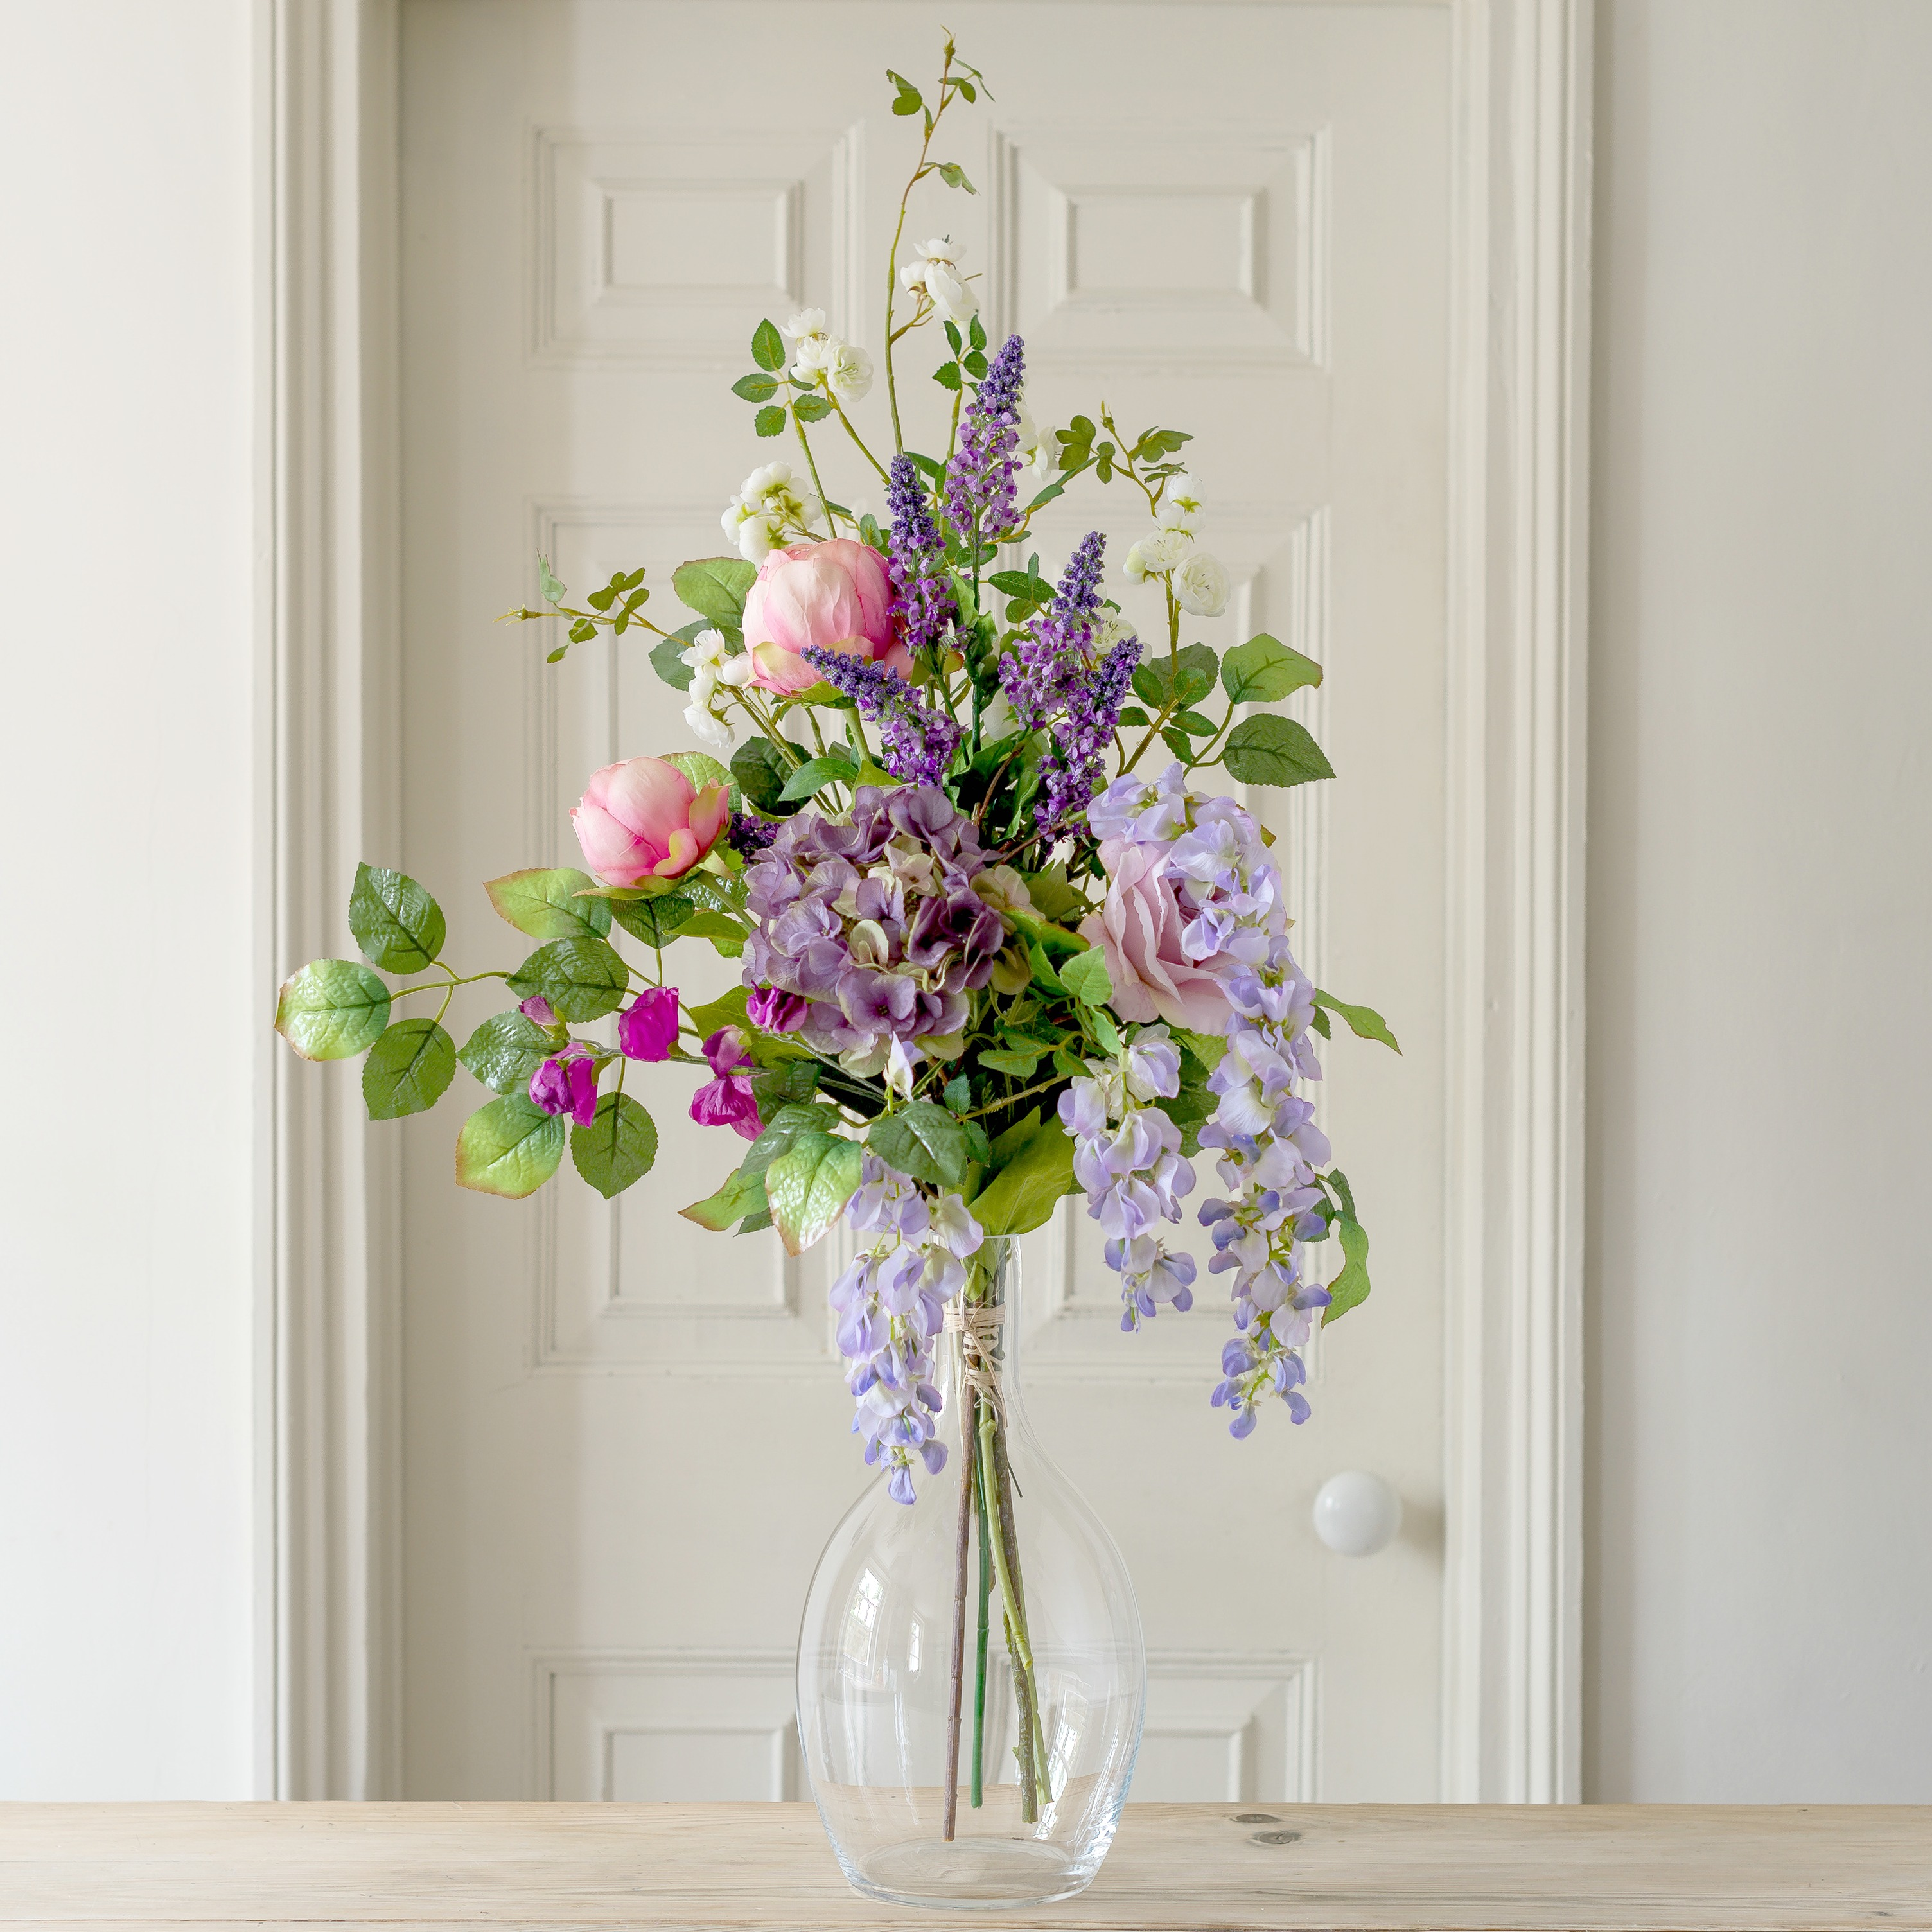 Shop by Price: Order Flowers and Plants Online by Price | Flower ...